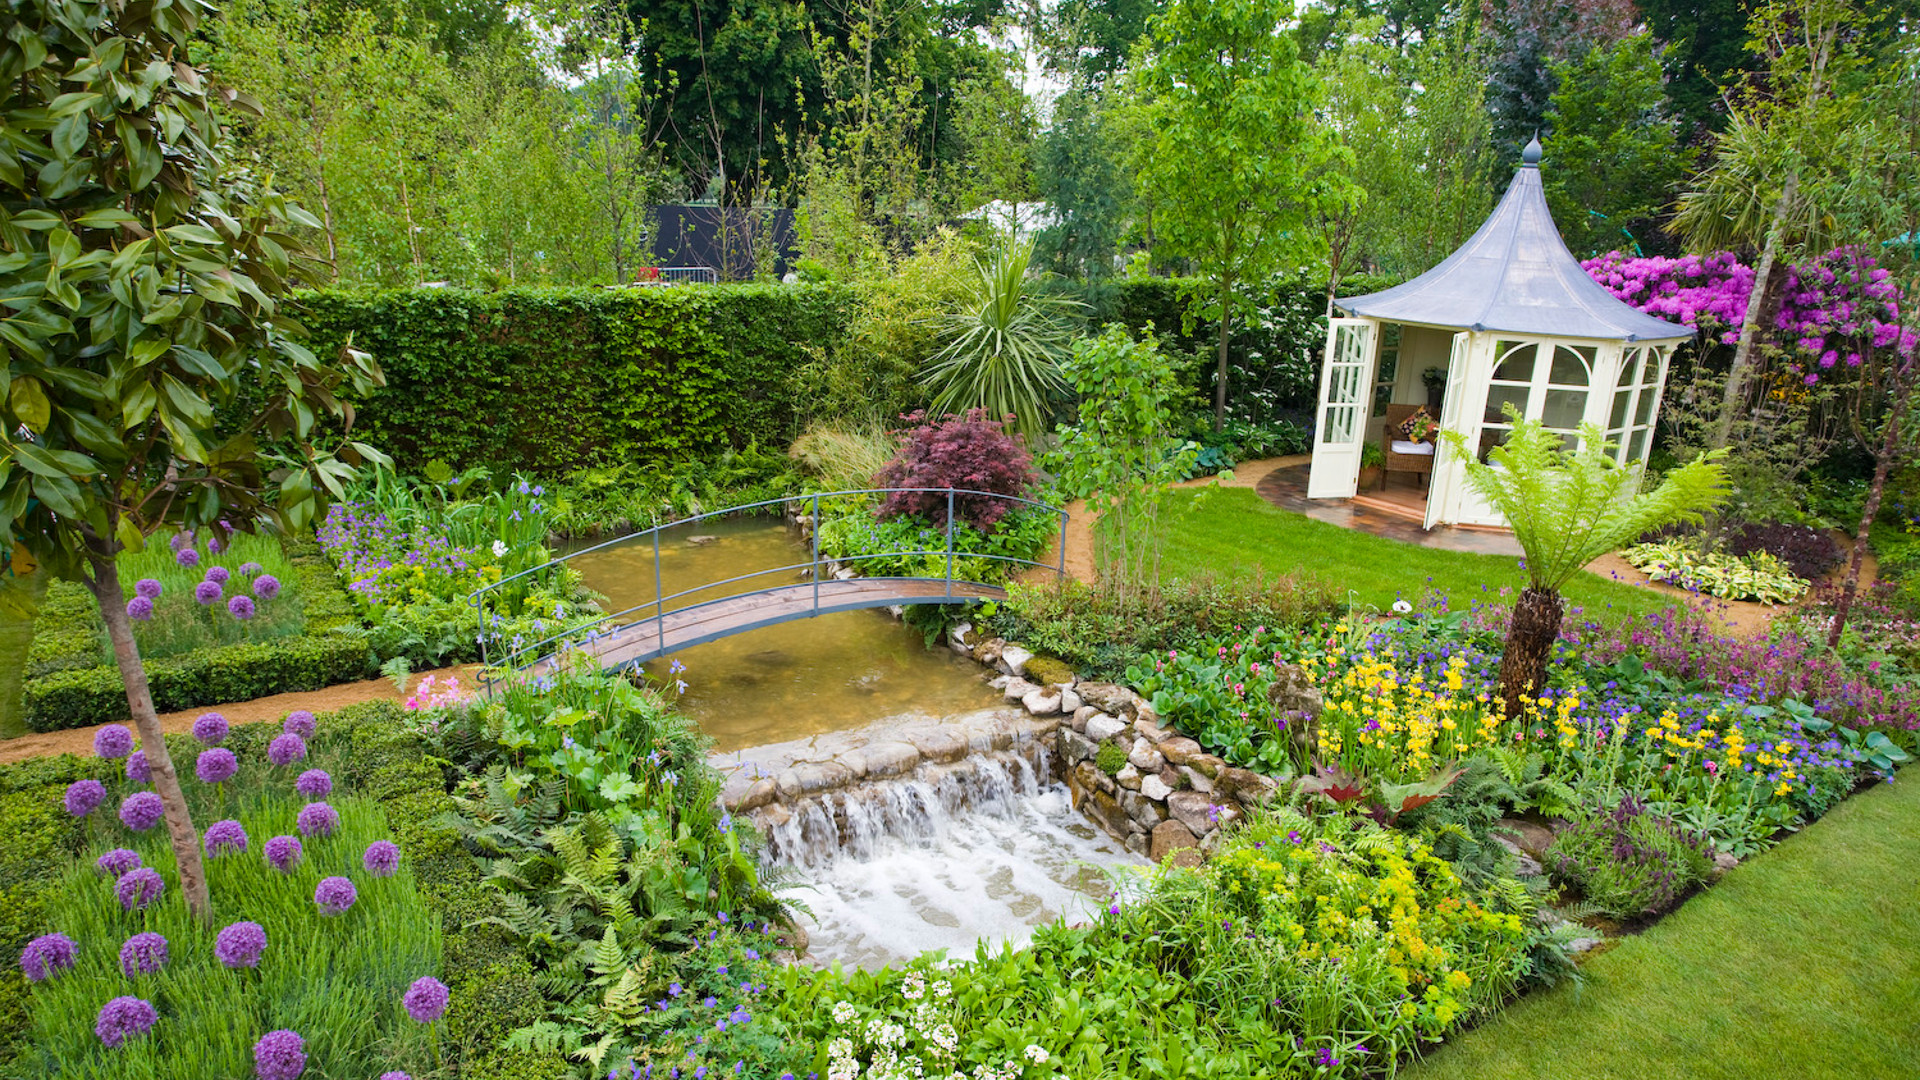 Tim austen garden designs designer gardens for Garden design ideas blog